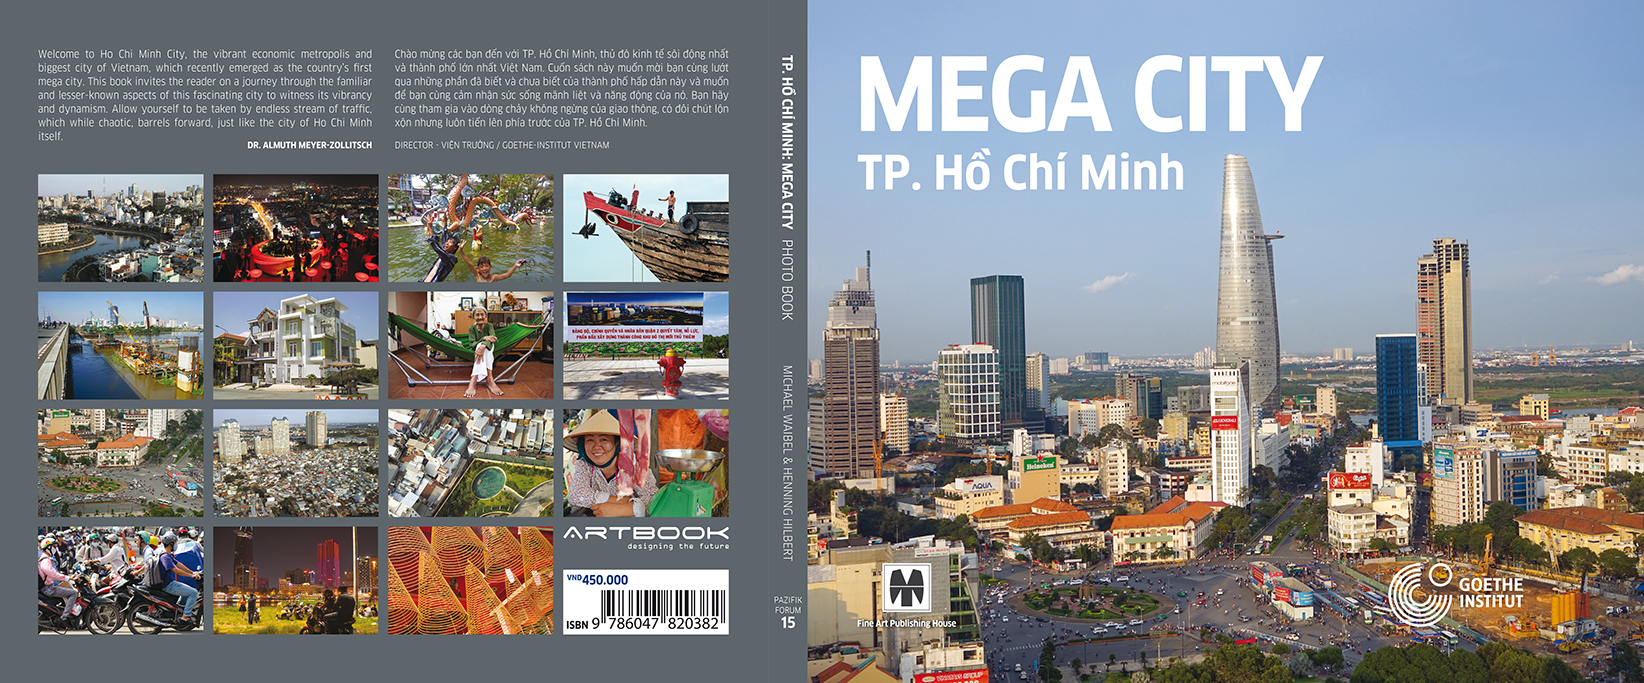 2015_HCMC_Book_2nd_edition_cover_02